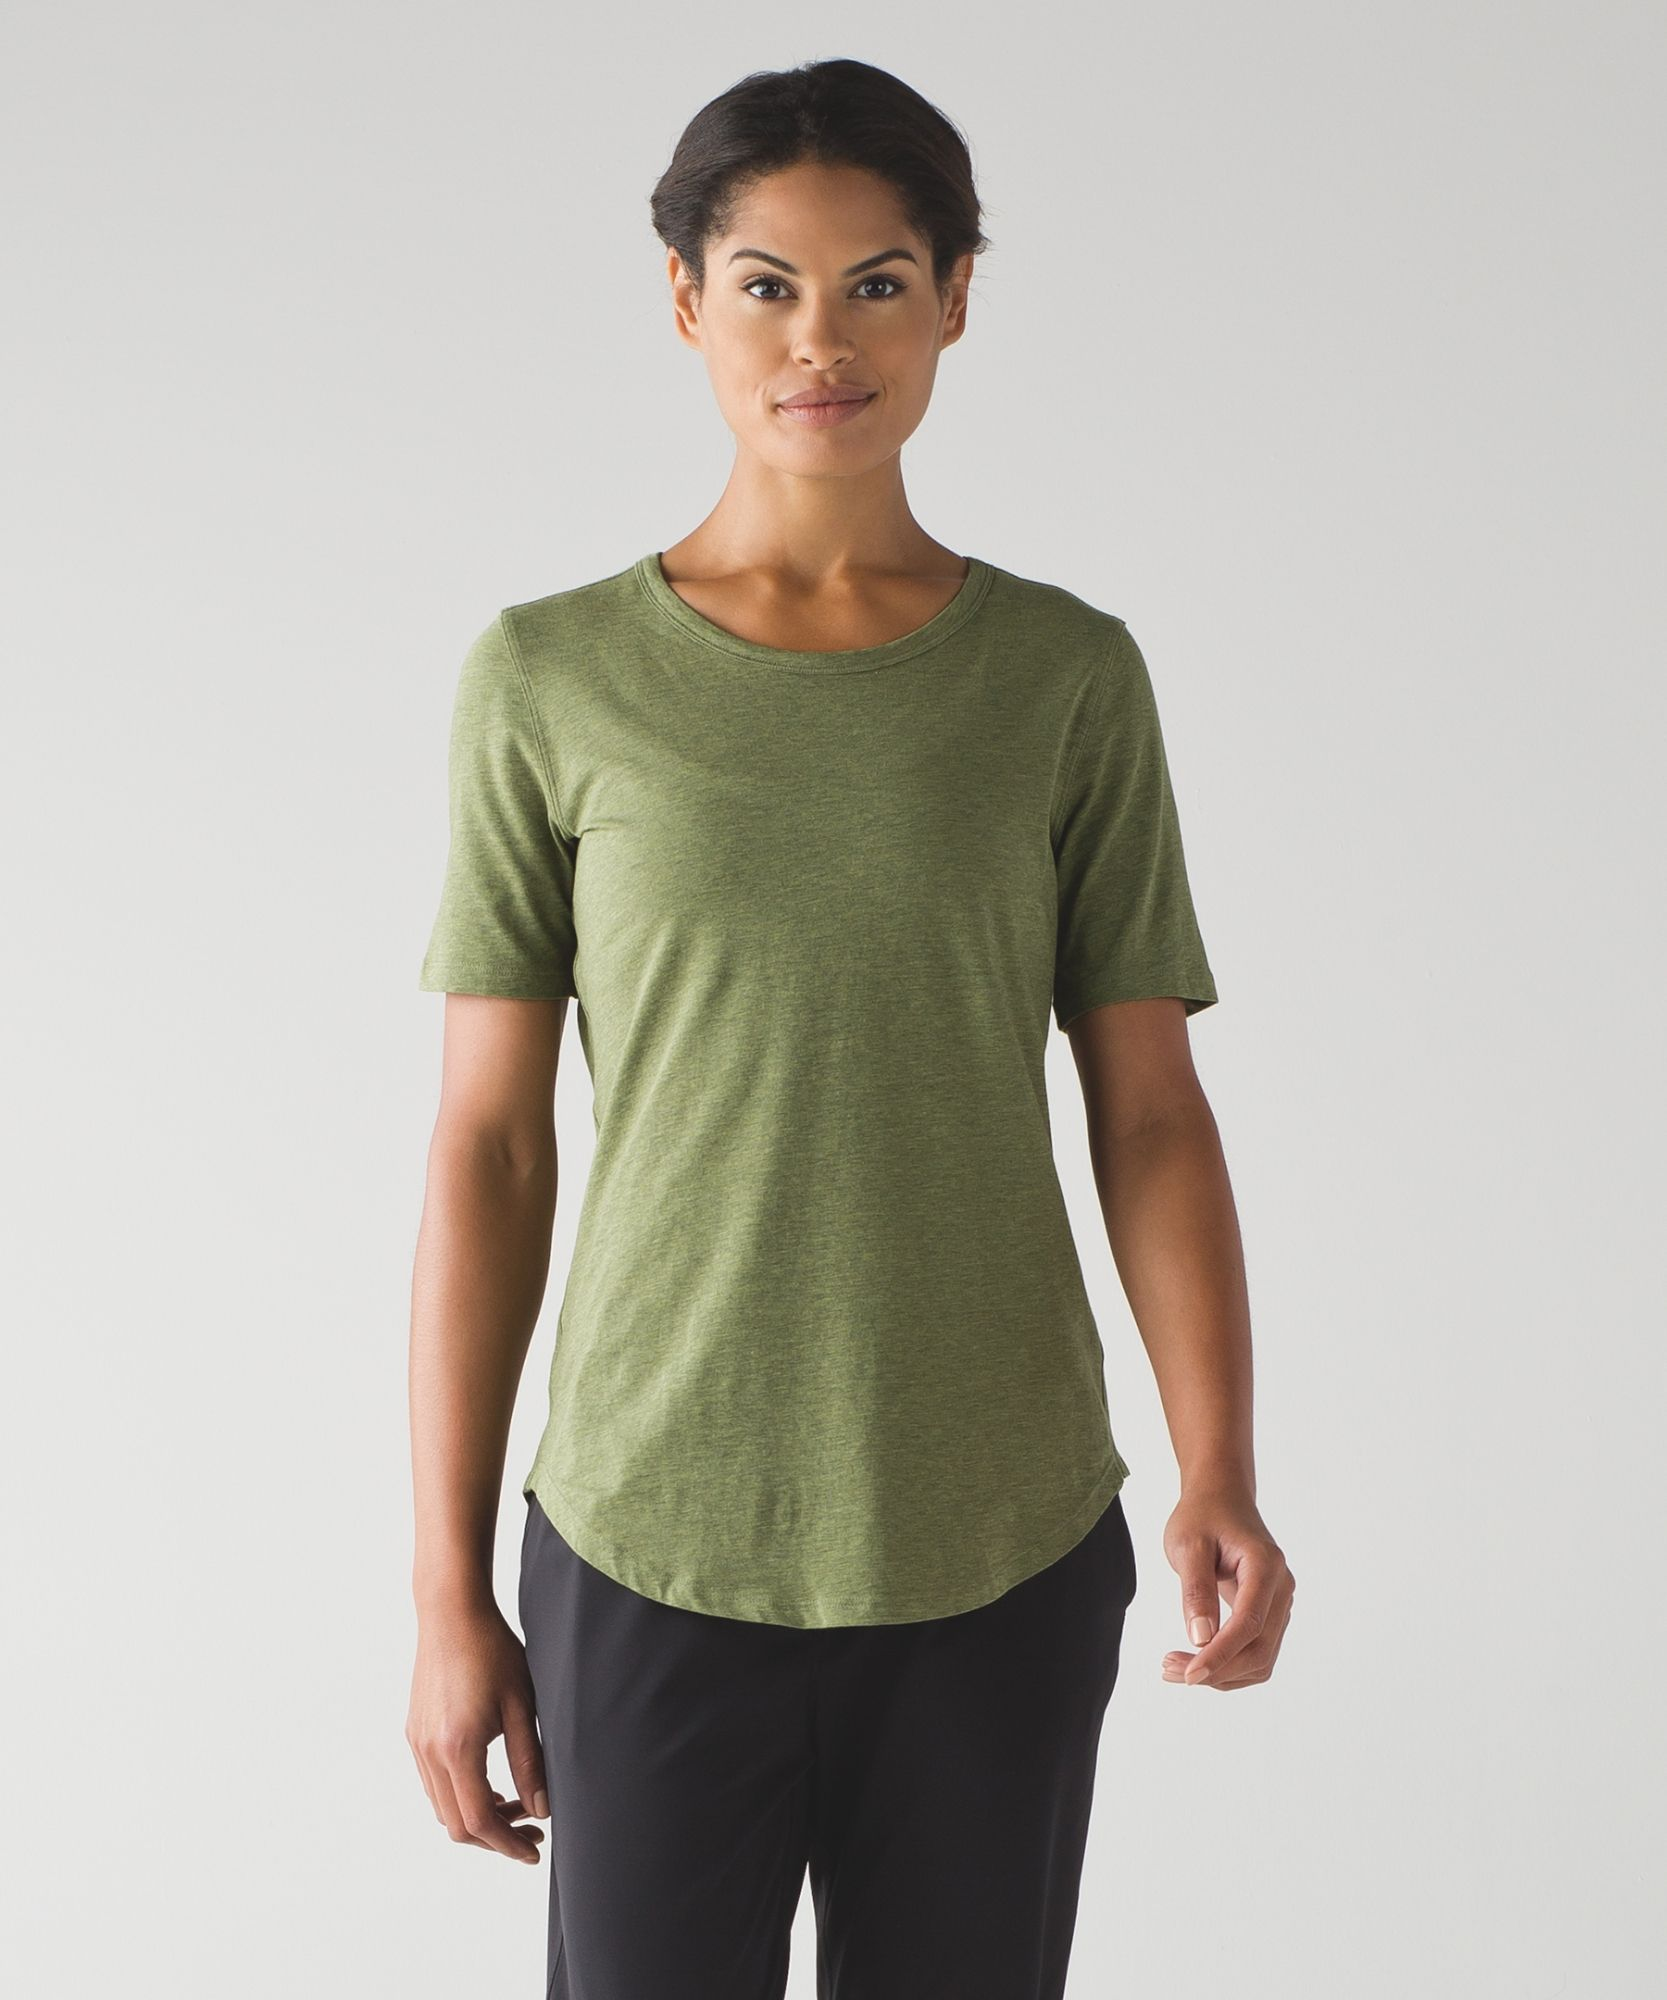 Women's Short Sleeve Top - Love Tee Short Sleeve Crew - lululemon